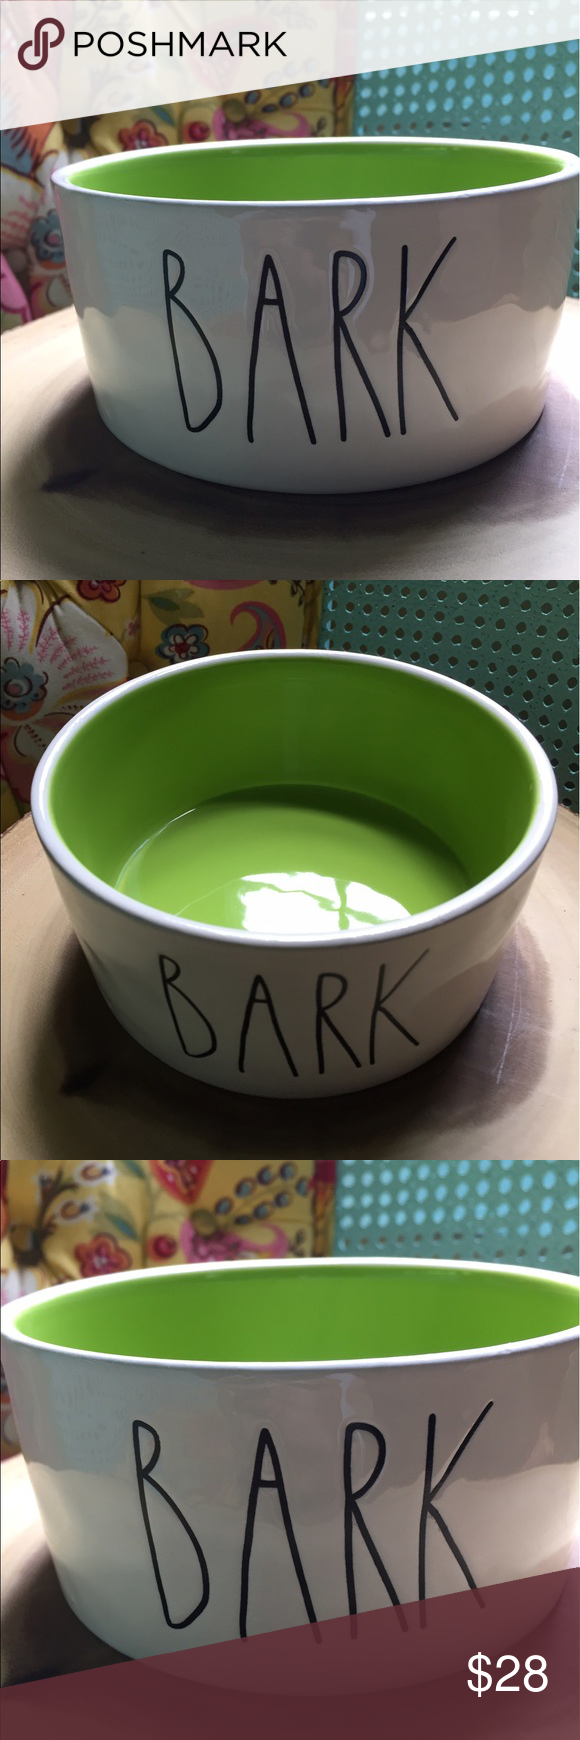 Rae Dunn Bark Bowl Lime Green Big Letter Rae Dunn Bark Bowl Big Letter, new  Pet, People Bowl Large Rae Dunn Other